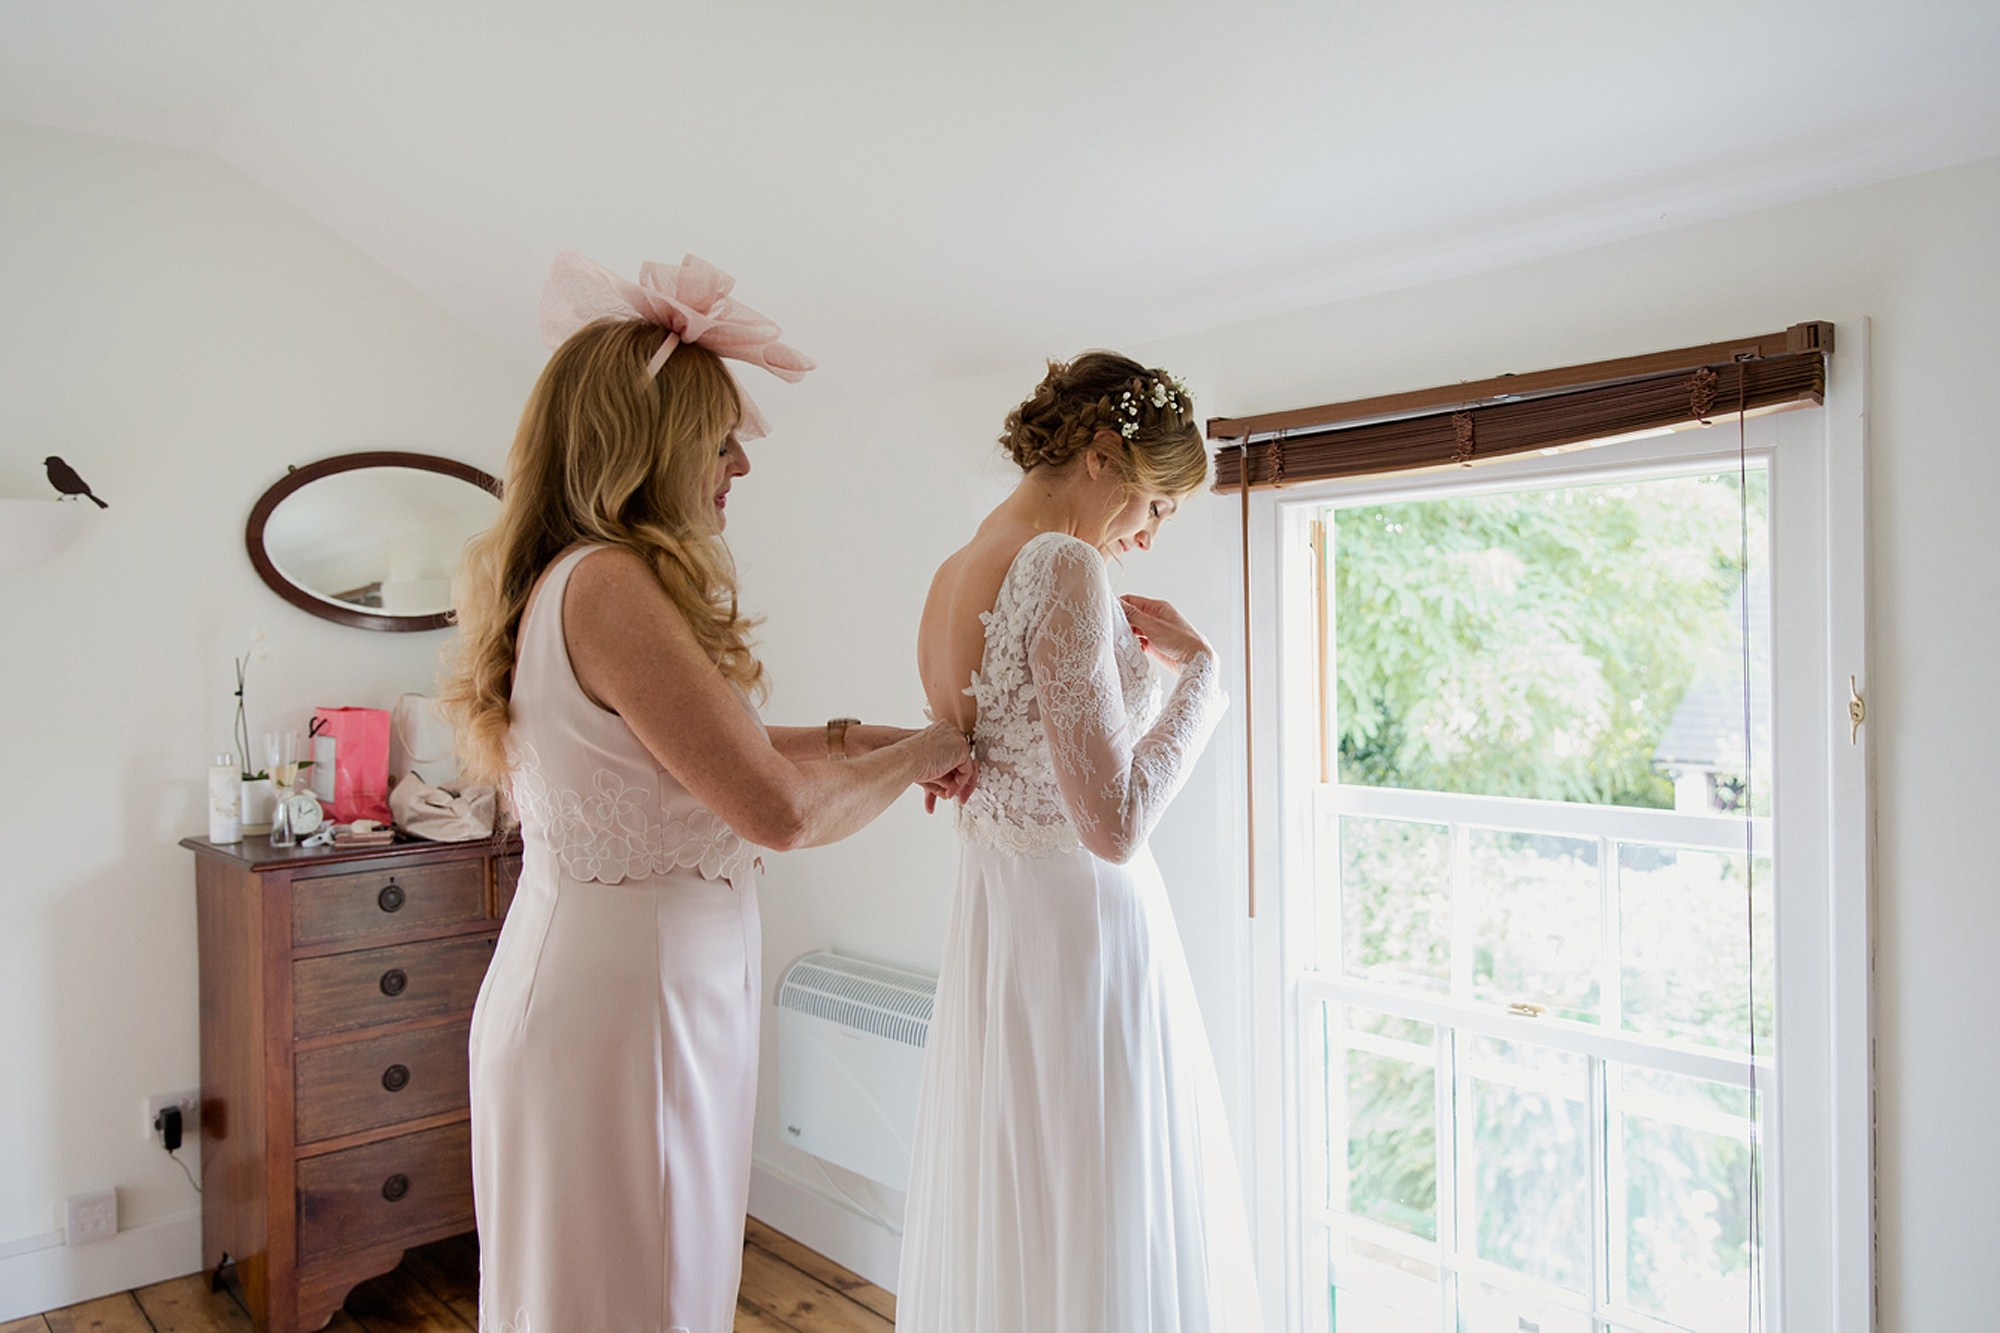 Marks Hall Estate wedding photography bride getting into dress